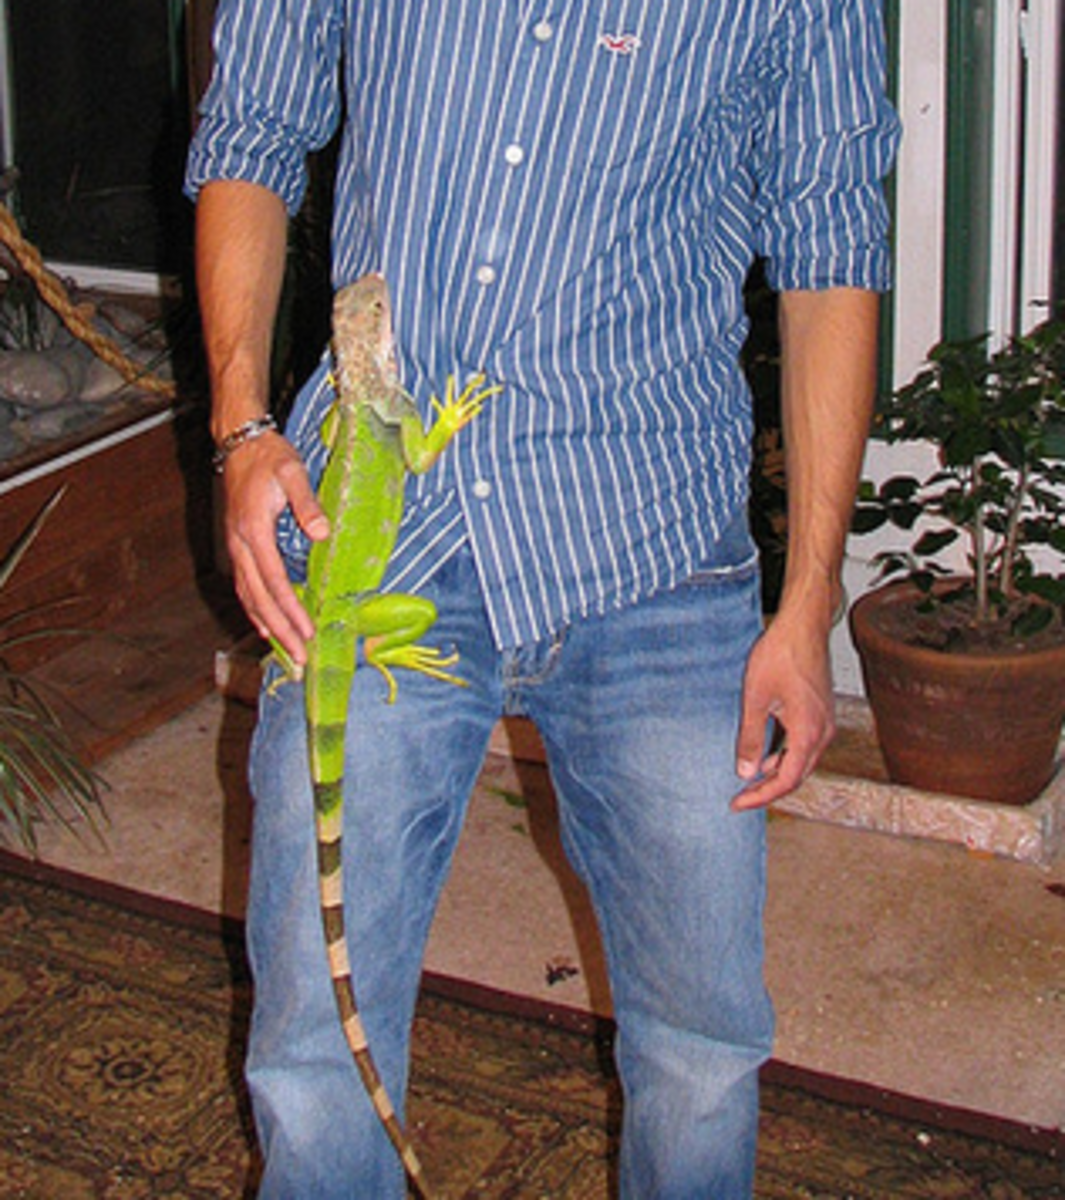 Climbing iguanas can be fun to watch, but be careful of those sharp claws!